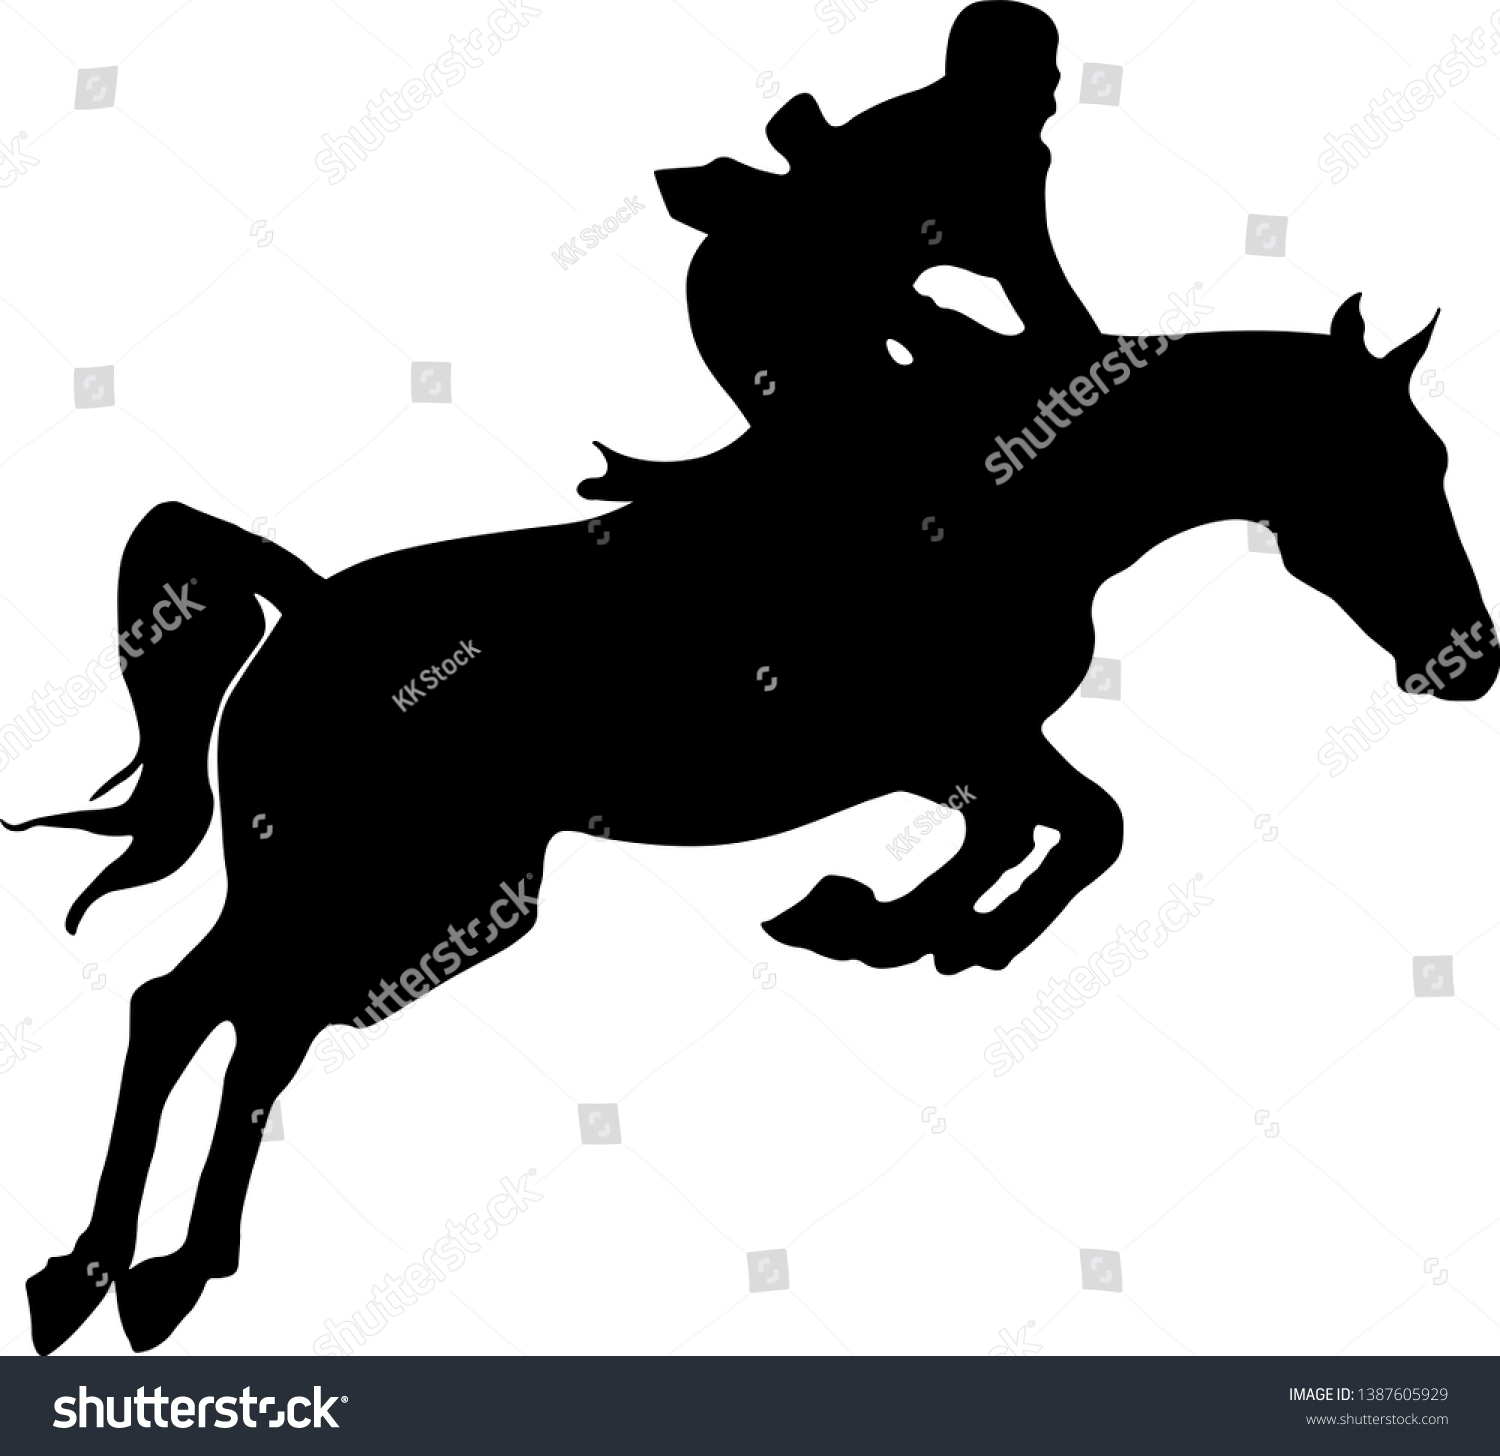 Horse Rider Jumping Silhouette Black Isolated Stock Vector Royalty Free 1387605929